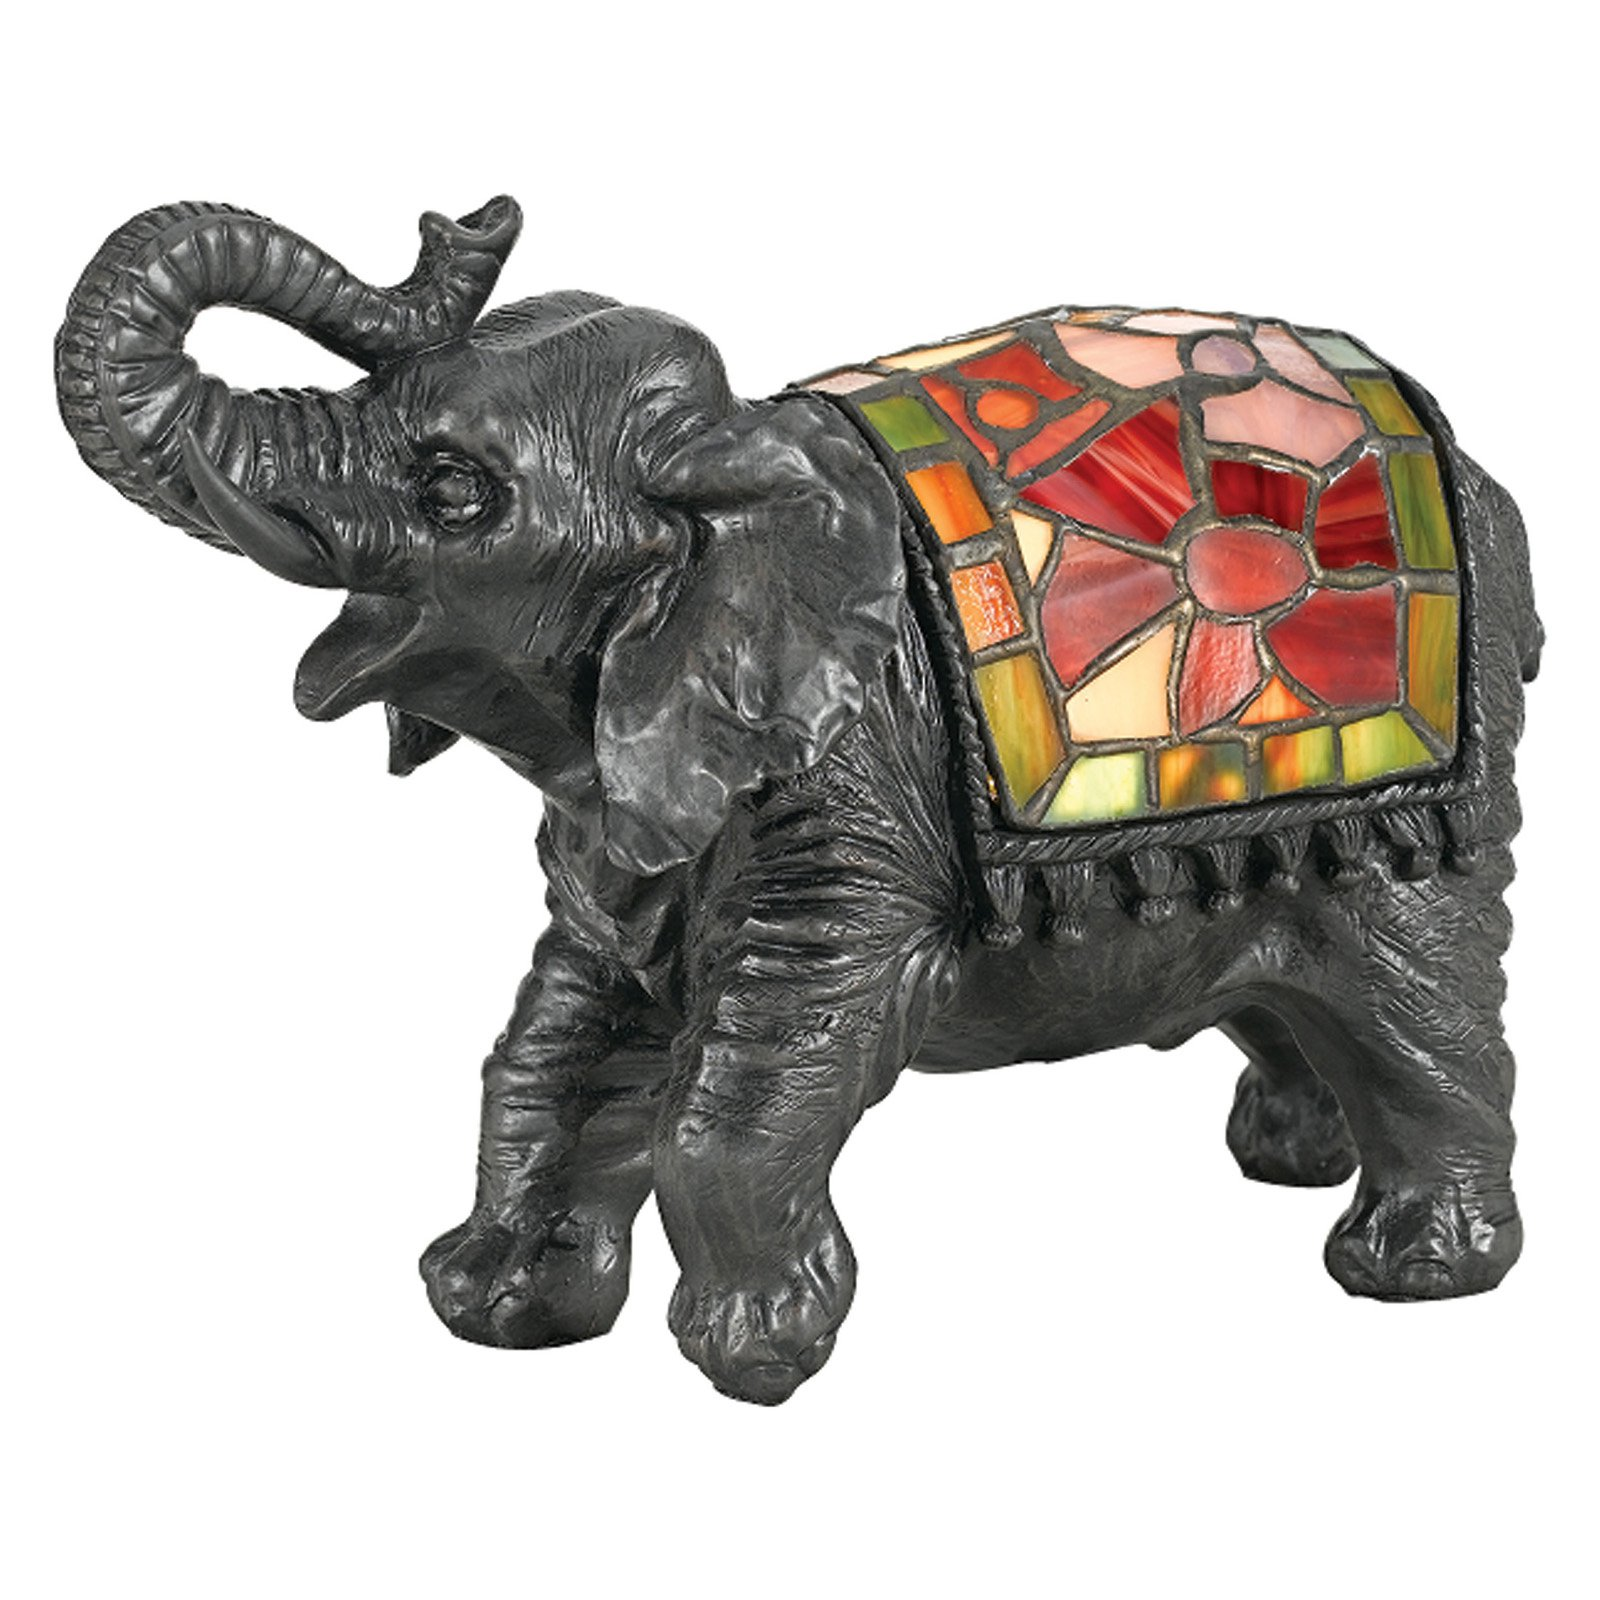 Quoizel Ashley Harbor Elephant TFX839Y Table Lamp by Quoizel